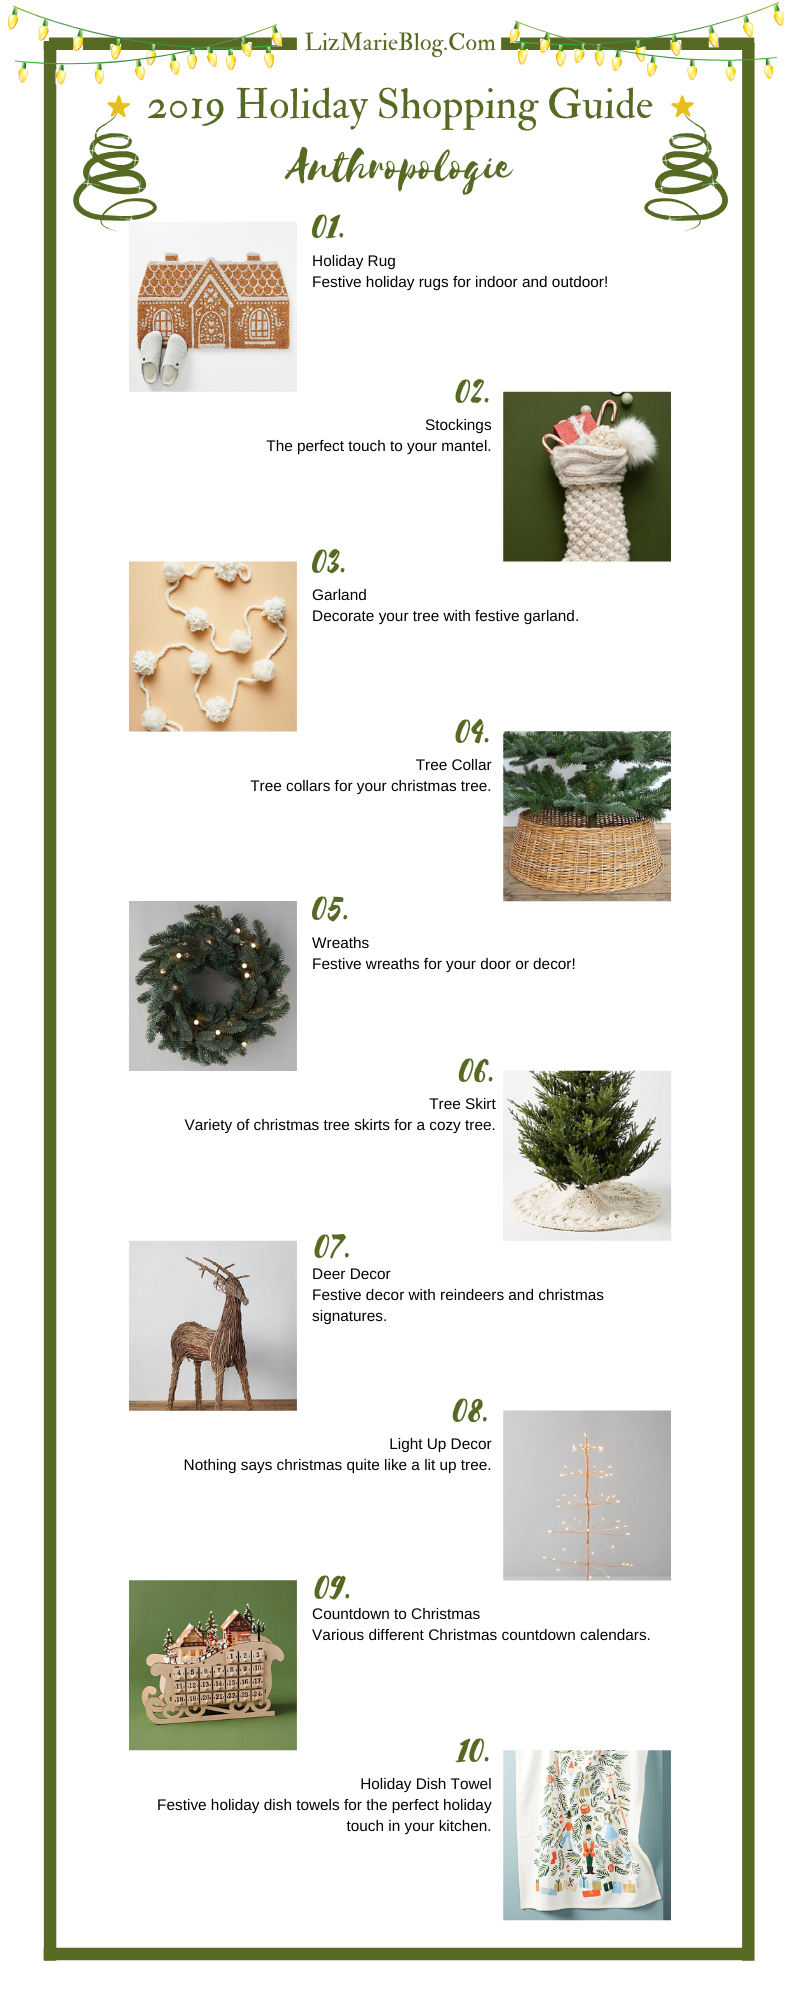 Anthropologie Holiday Shopping Guide